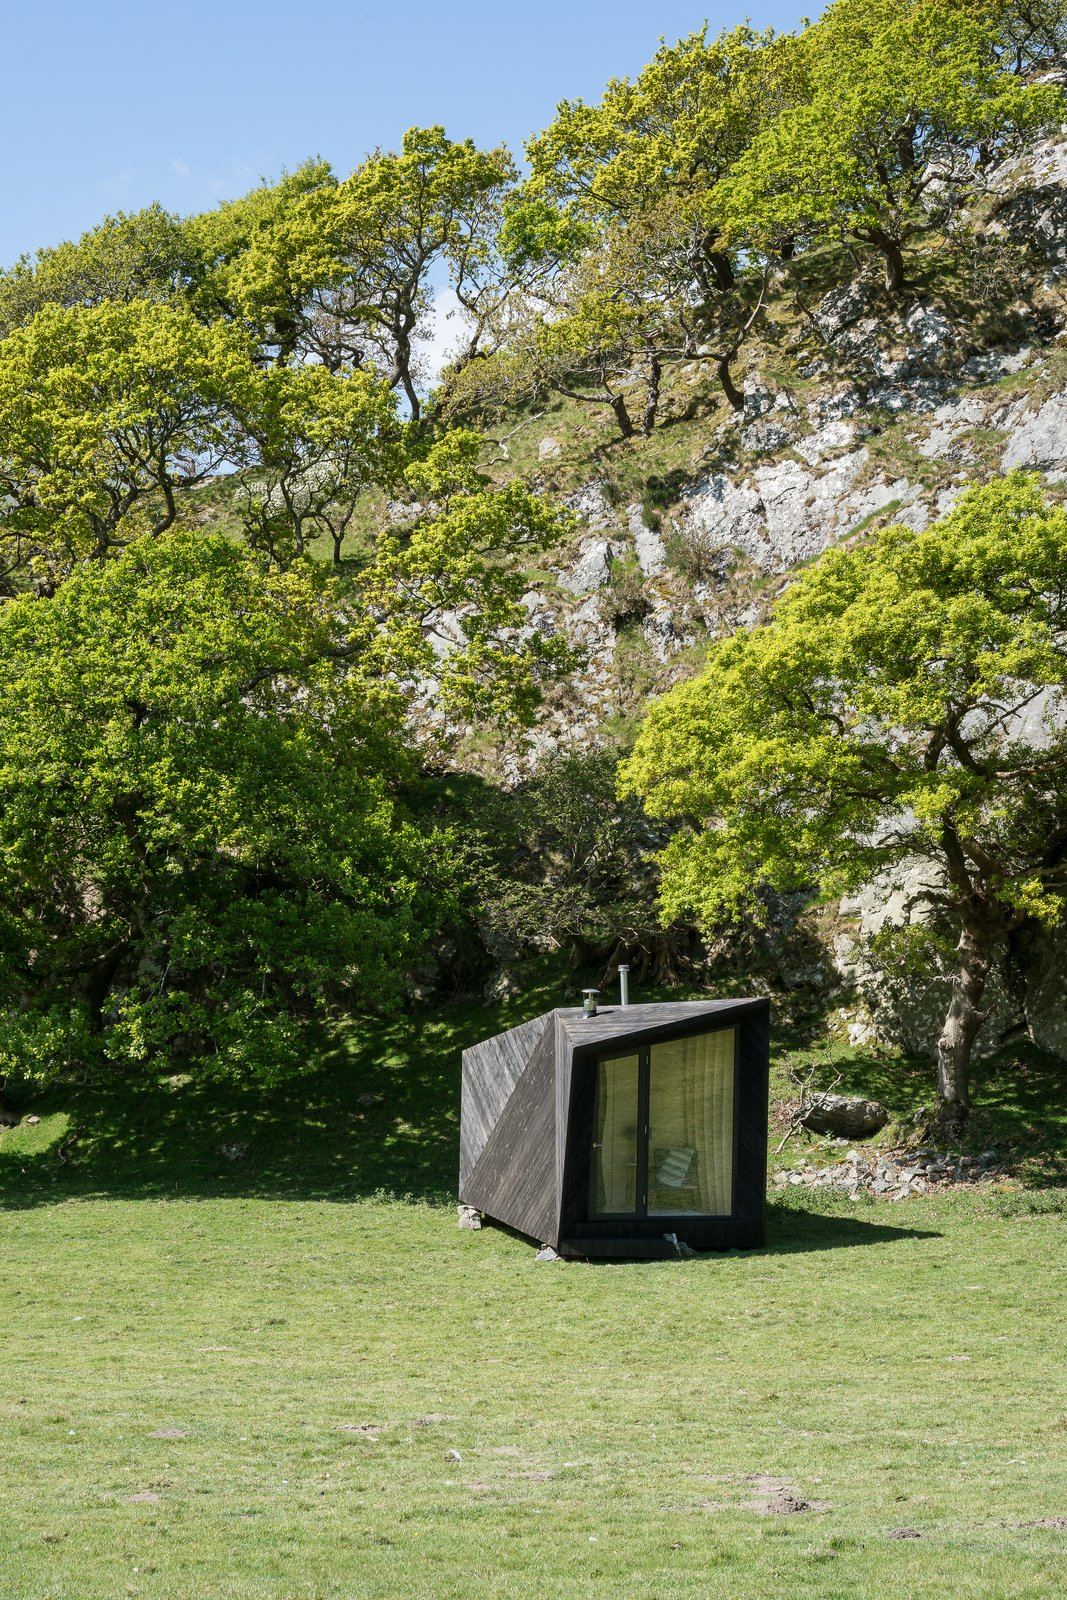 Photo 2 of 11 in Tour One of Epic Retreat's Tiny Pop-Up Hotel Cabins in the Welsh Countryside